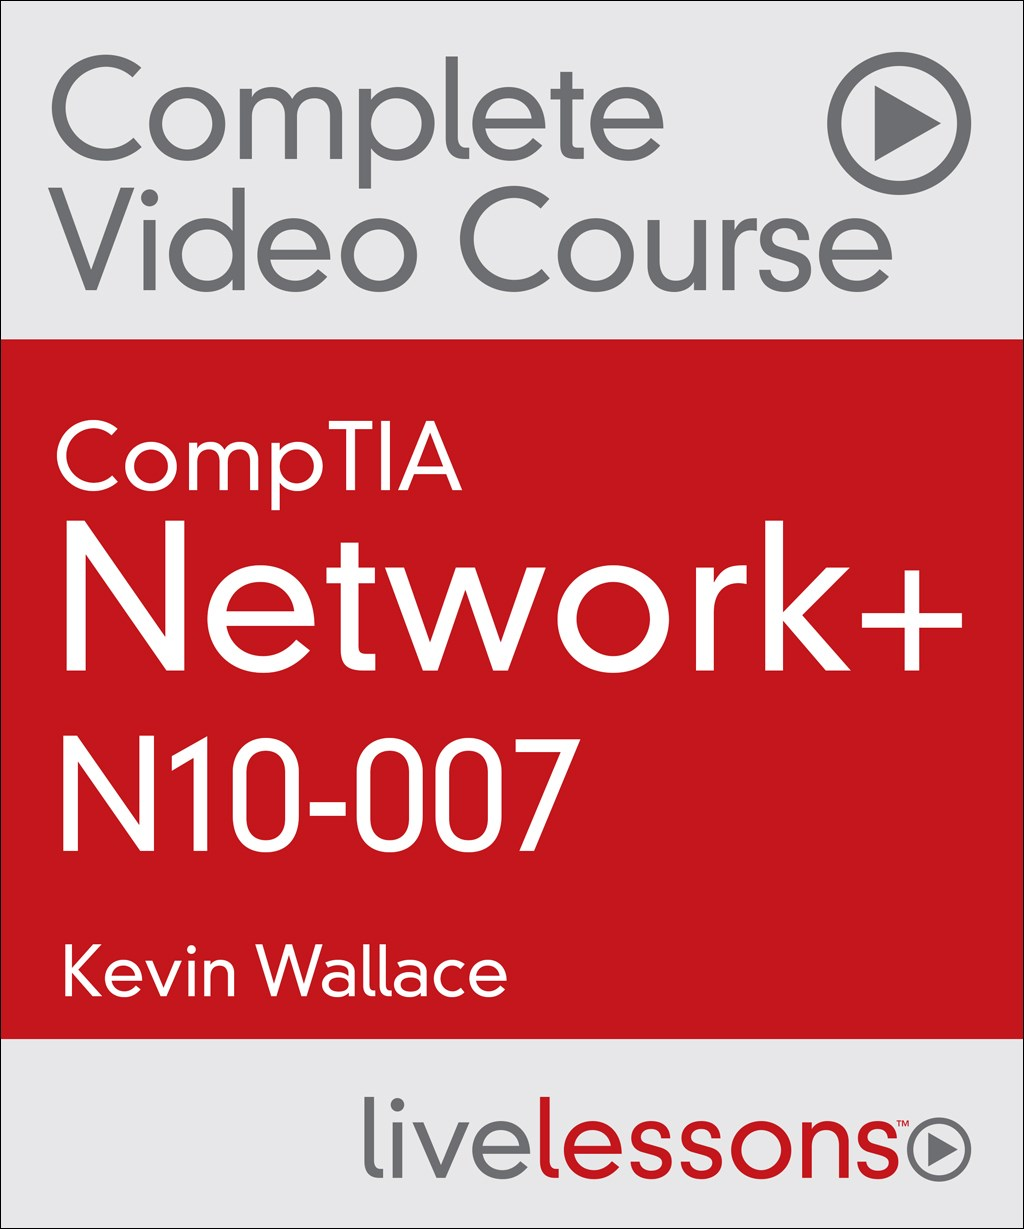 CompTIA Network+ N10-007 Complete Video Course and Pracitce Test